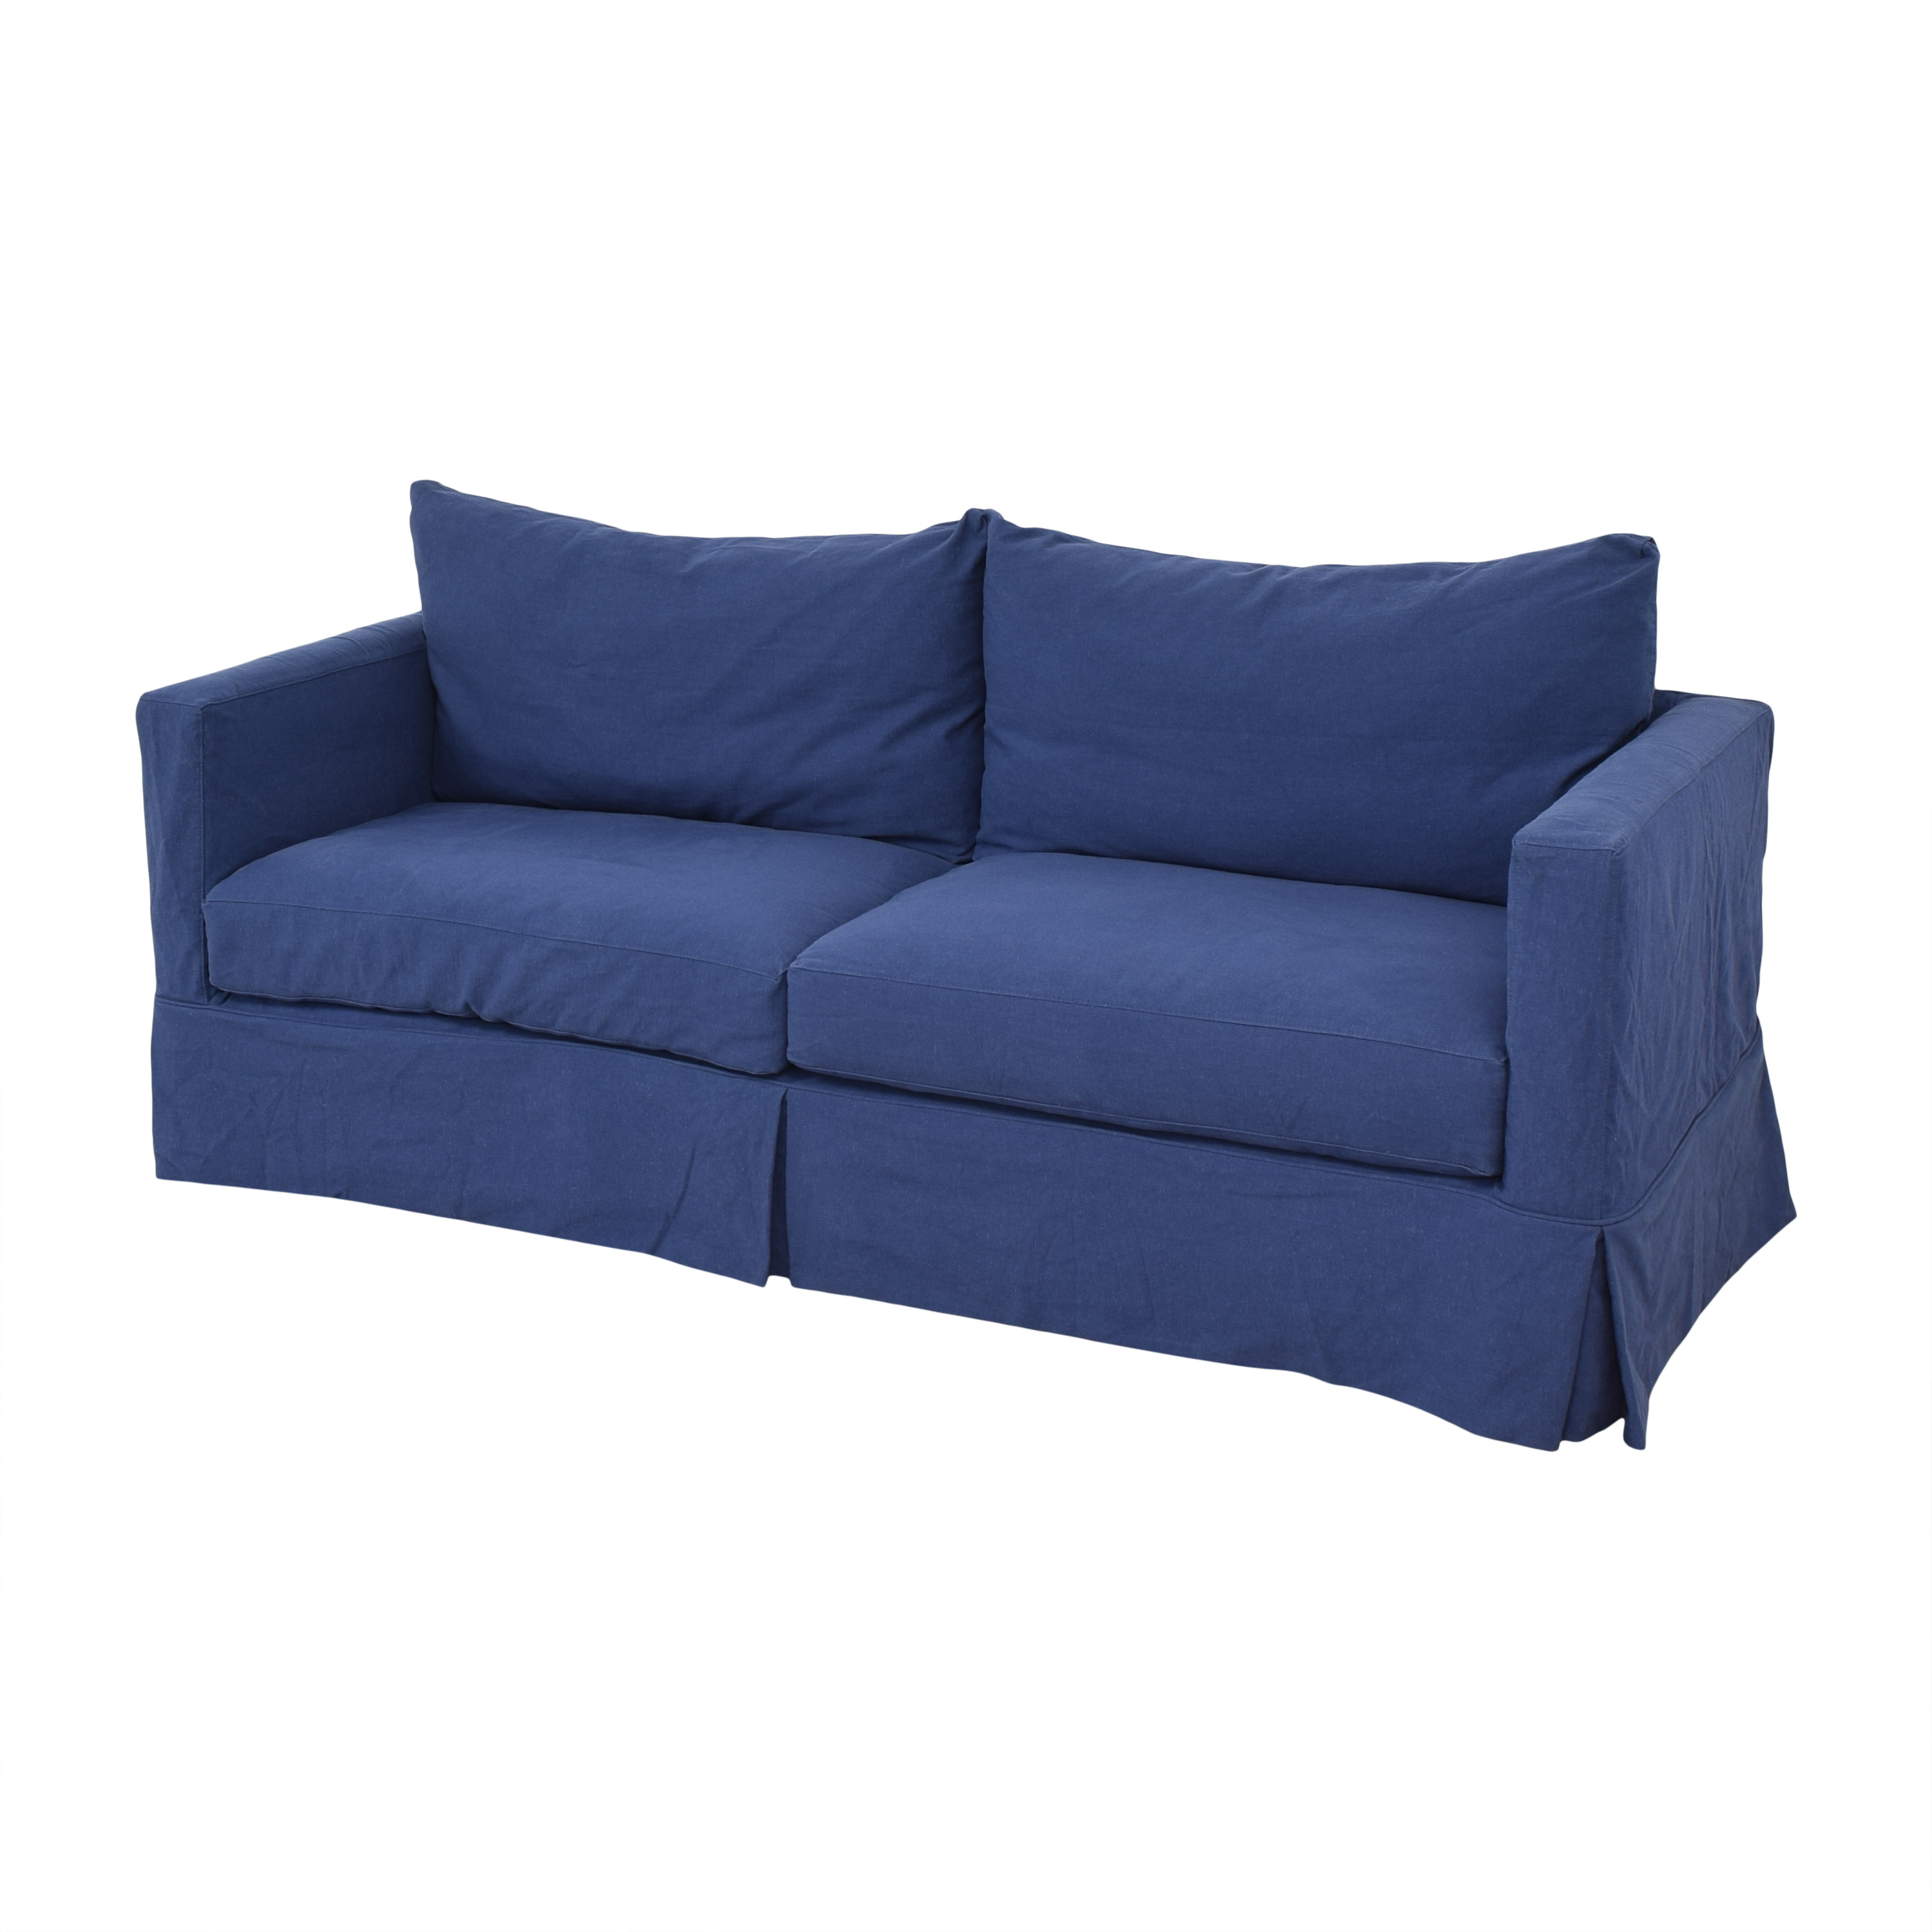 Crate & Barrel Willow Modern Slipcovered Sofa / Classic Sofas